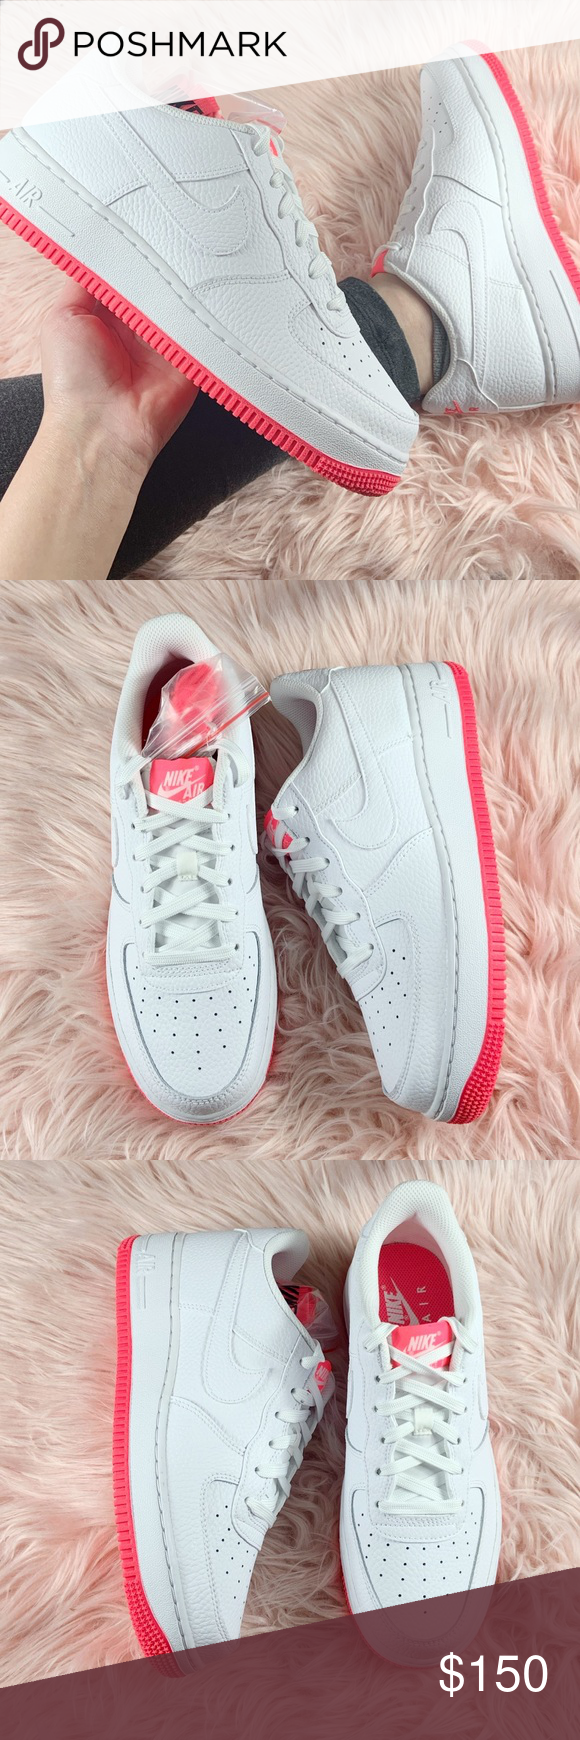 Nike Air Force 1 Sneakers Pink White